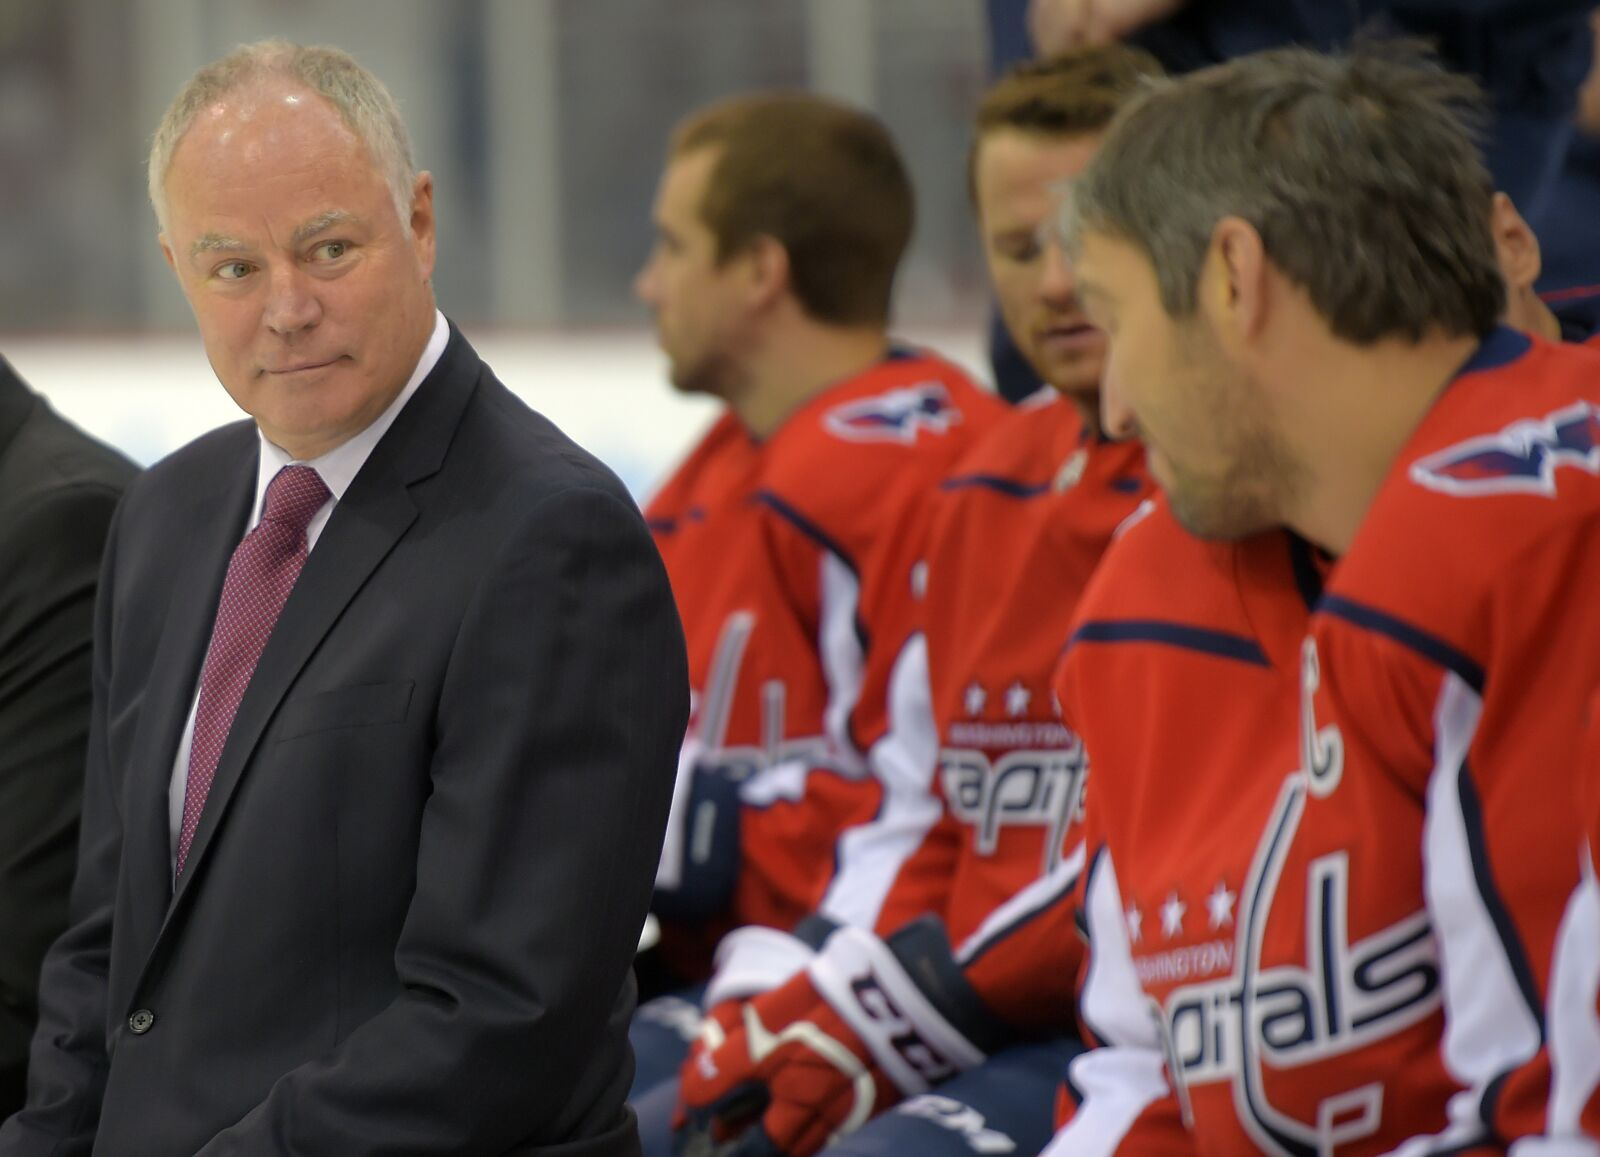 Washington Capitals: Salary Cap Crunch, Which team has it worse?